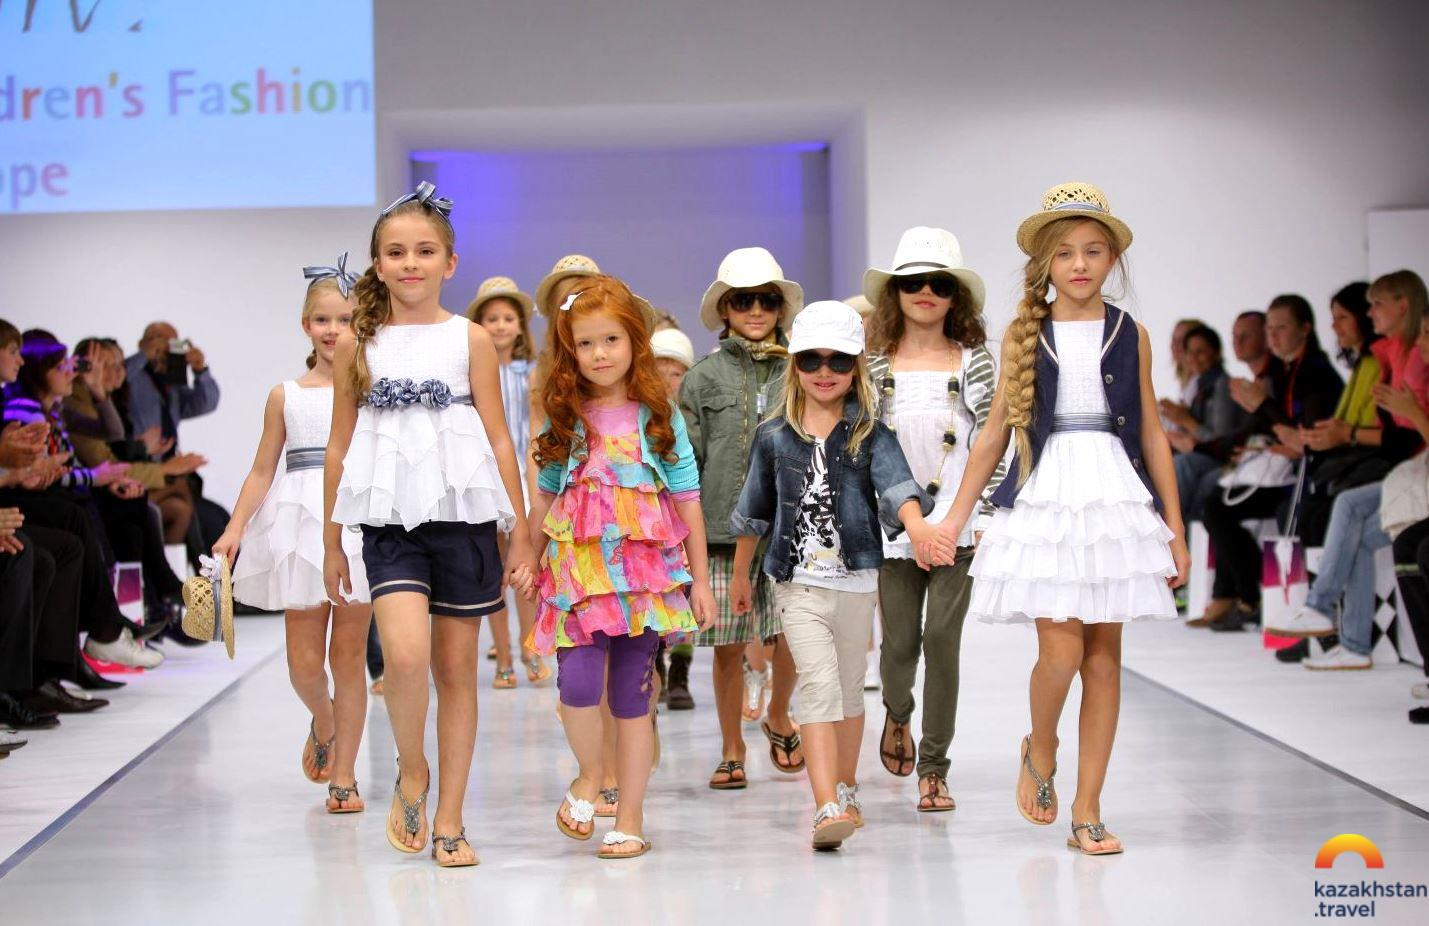 Childhood 2020/Children's Fashion 2020 - International Specialized Exhibition of Children's Products and Fashion